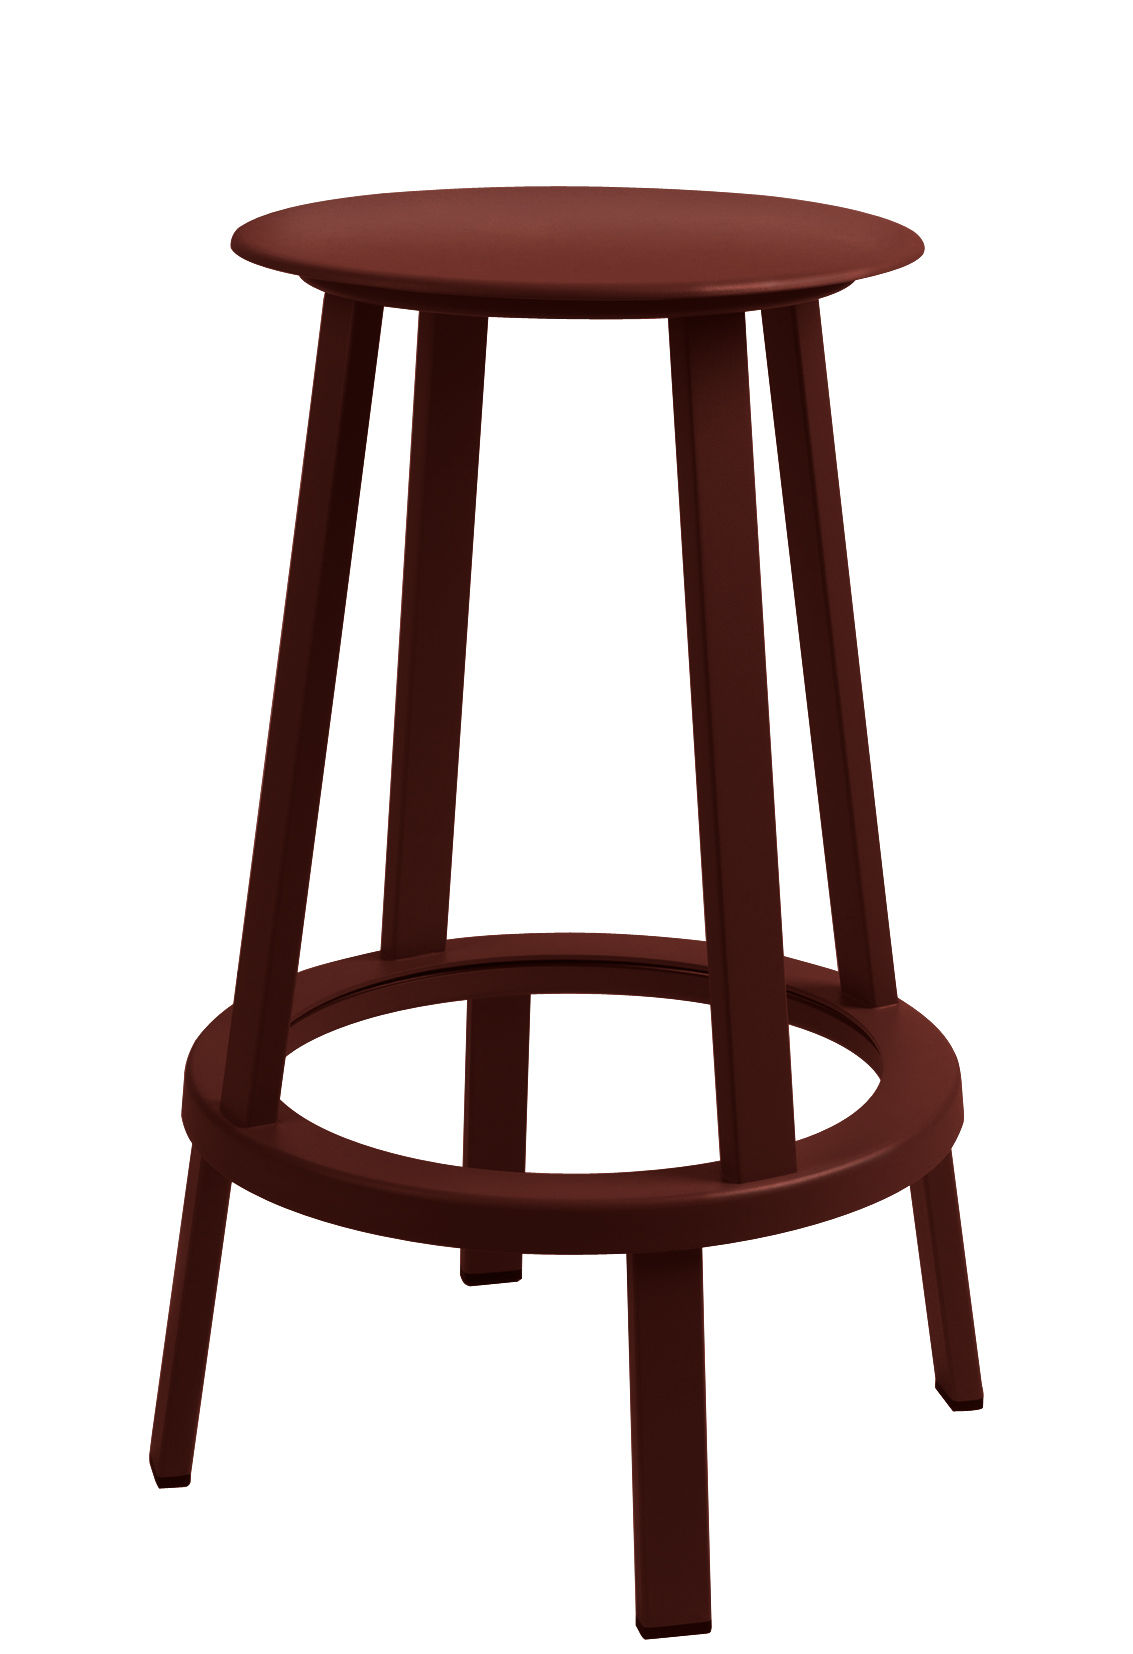 Furniture - Bar Stools - Revolver Swivel bar stool - H 65 cm - Metal by Hay - Red - Steel xith epowy paint